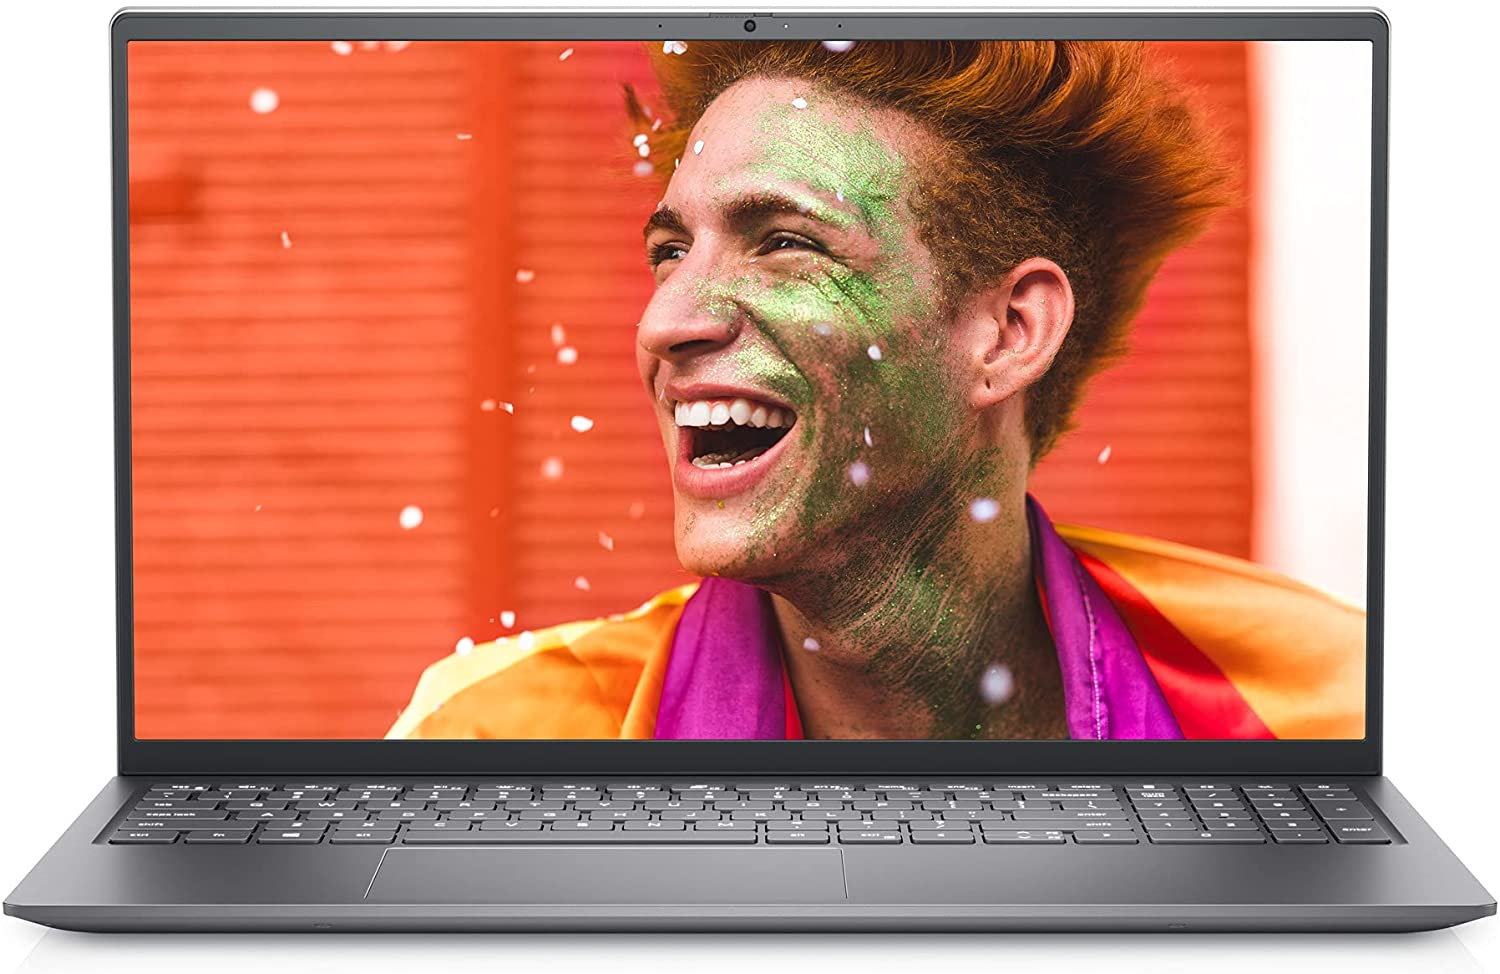 Dell Inspiron 15 5515, 15.6 inch FHD Touch Laptop - AMD Ryzen 7 5700U, 16GB DDR4 RAM, 512GB SSD, AMD Radeon Graphics with Shared Graphics Memory , Windows 10 Home - Platinum Silver (Latest Model)